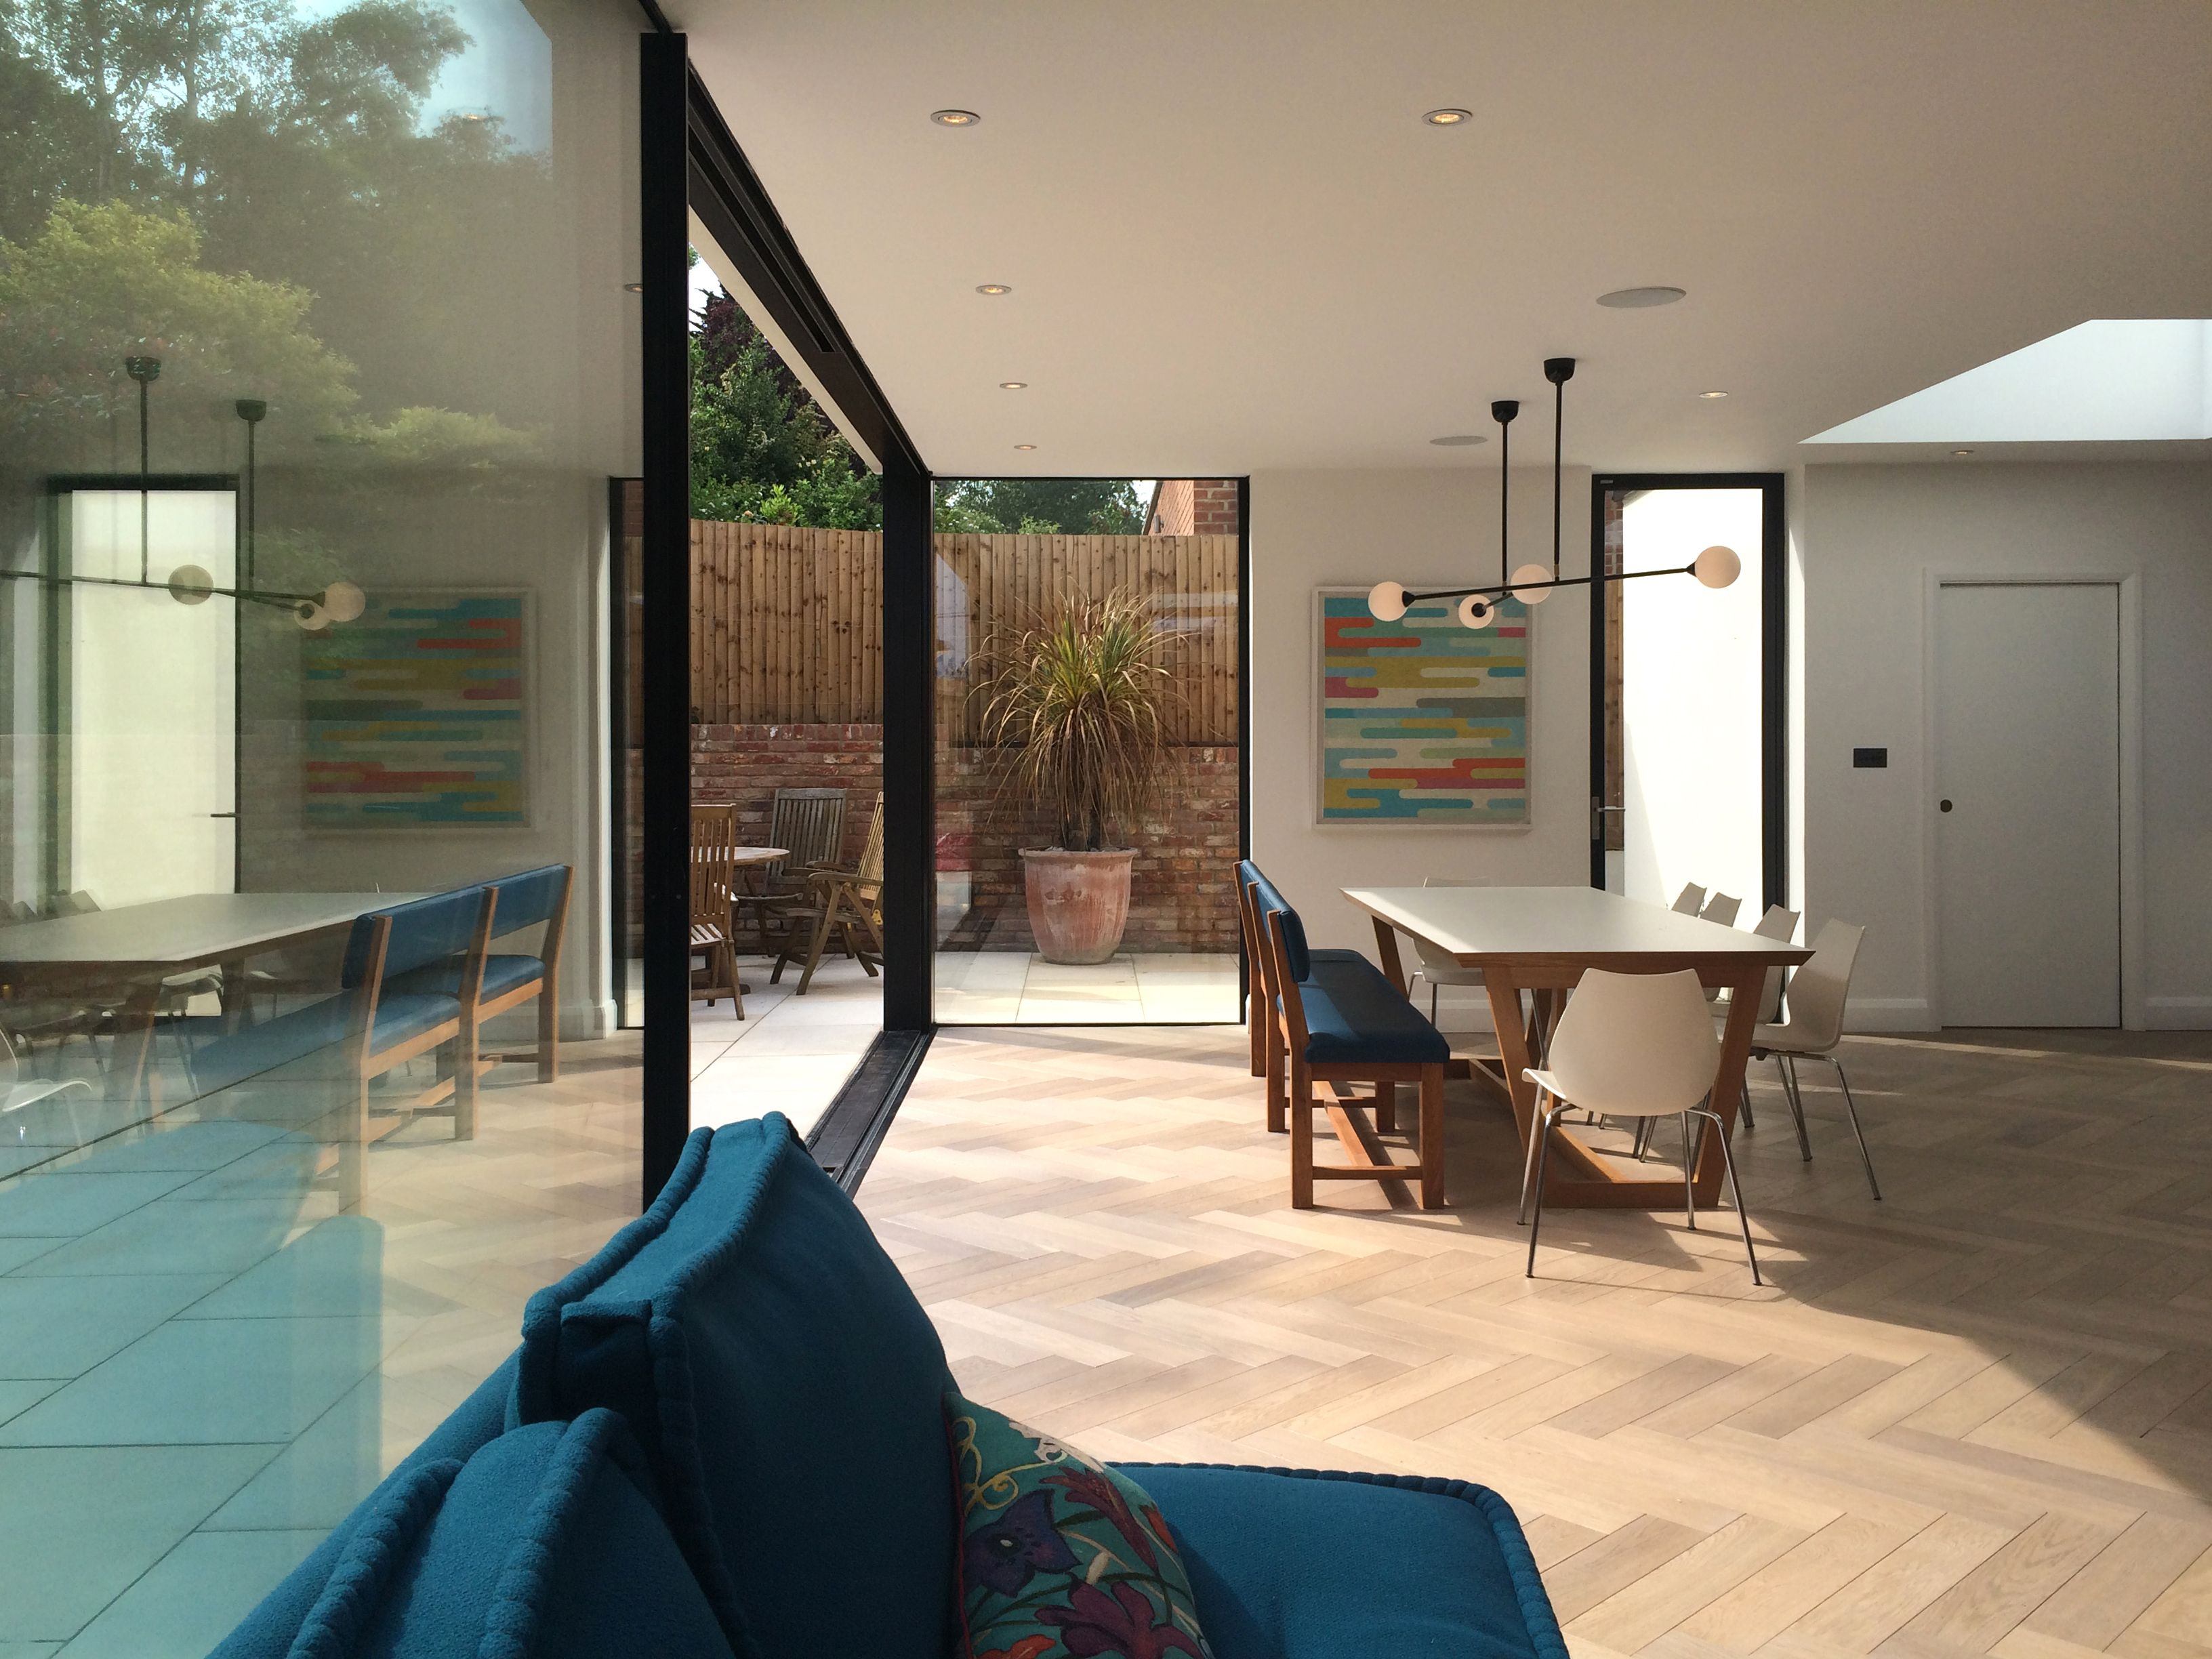 New Open Plan Living Spaces Flooded With Light Via Large